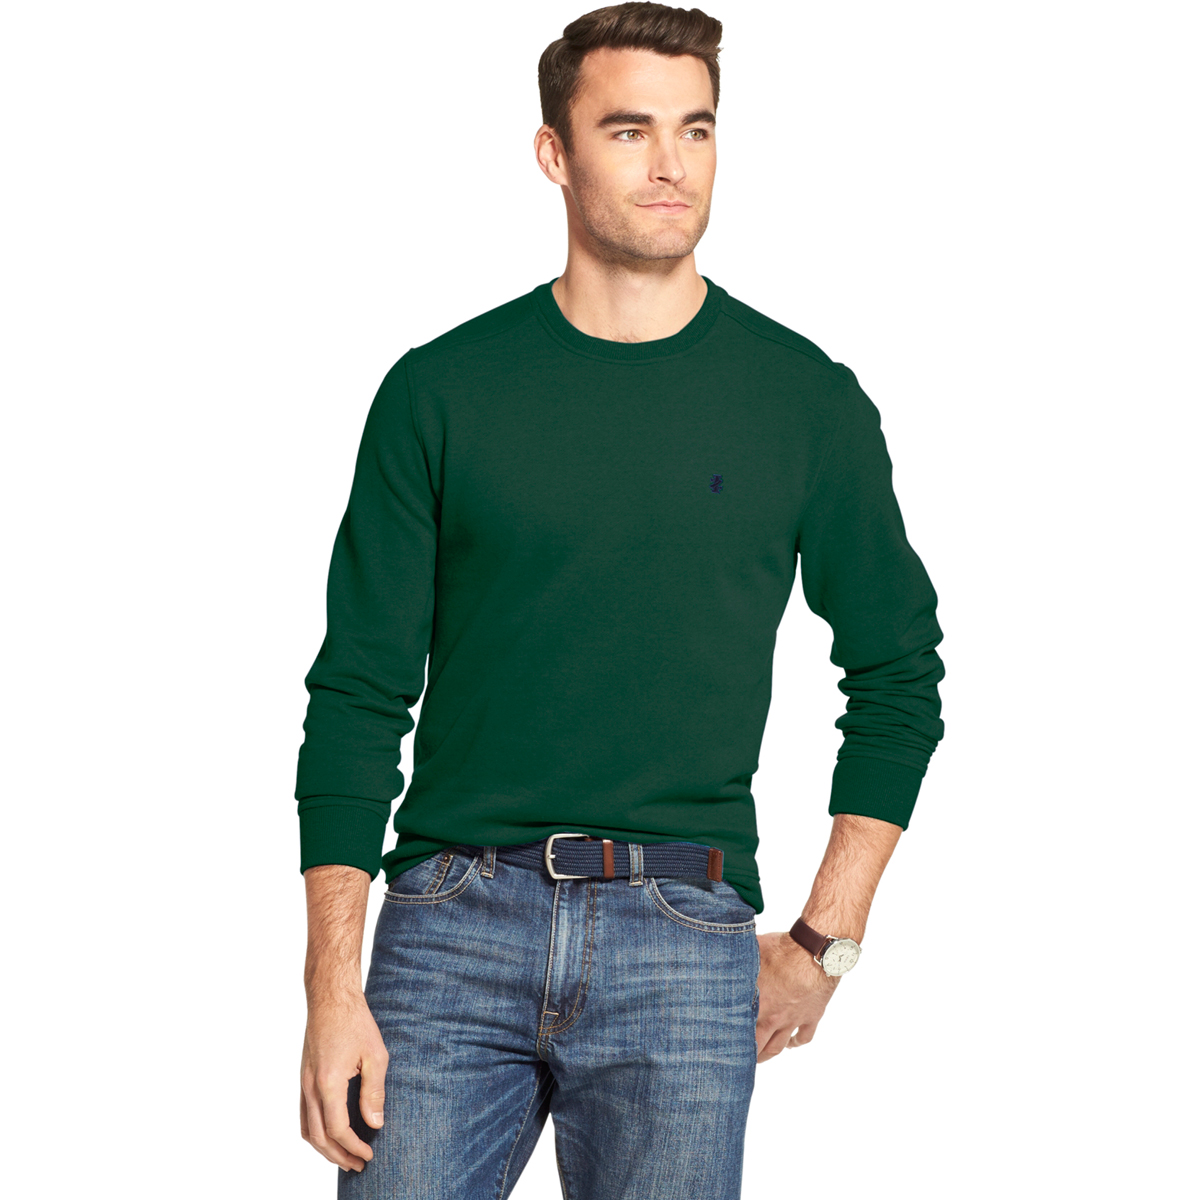 Izod Men's Long-Sleeve Supersoft Fleece Crewneck Sweater - Green, L